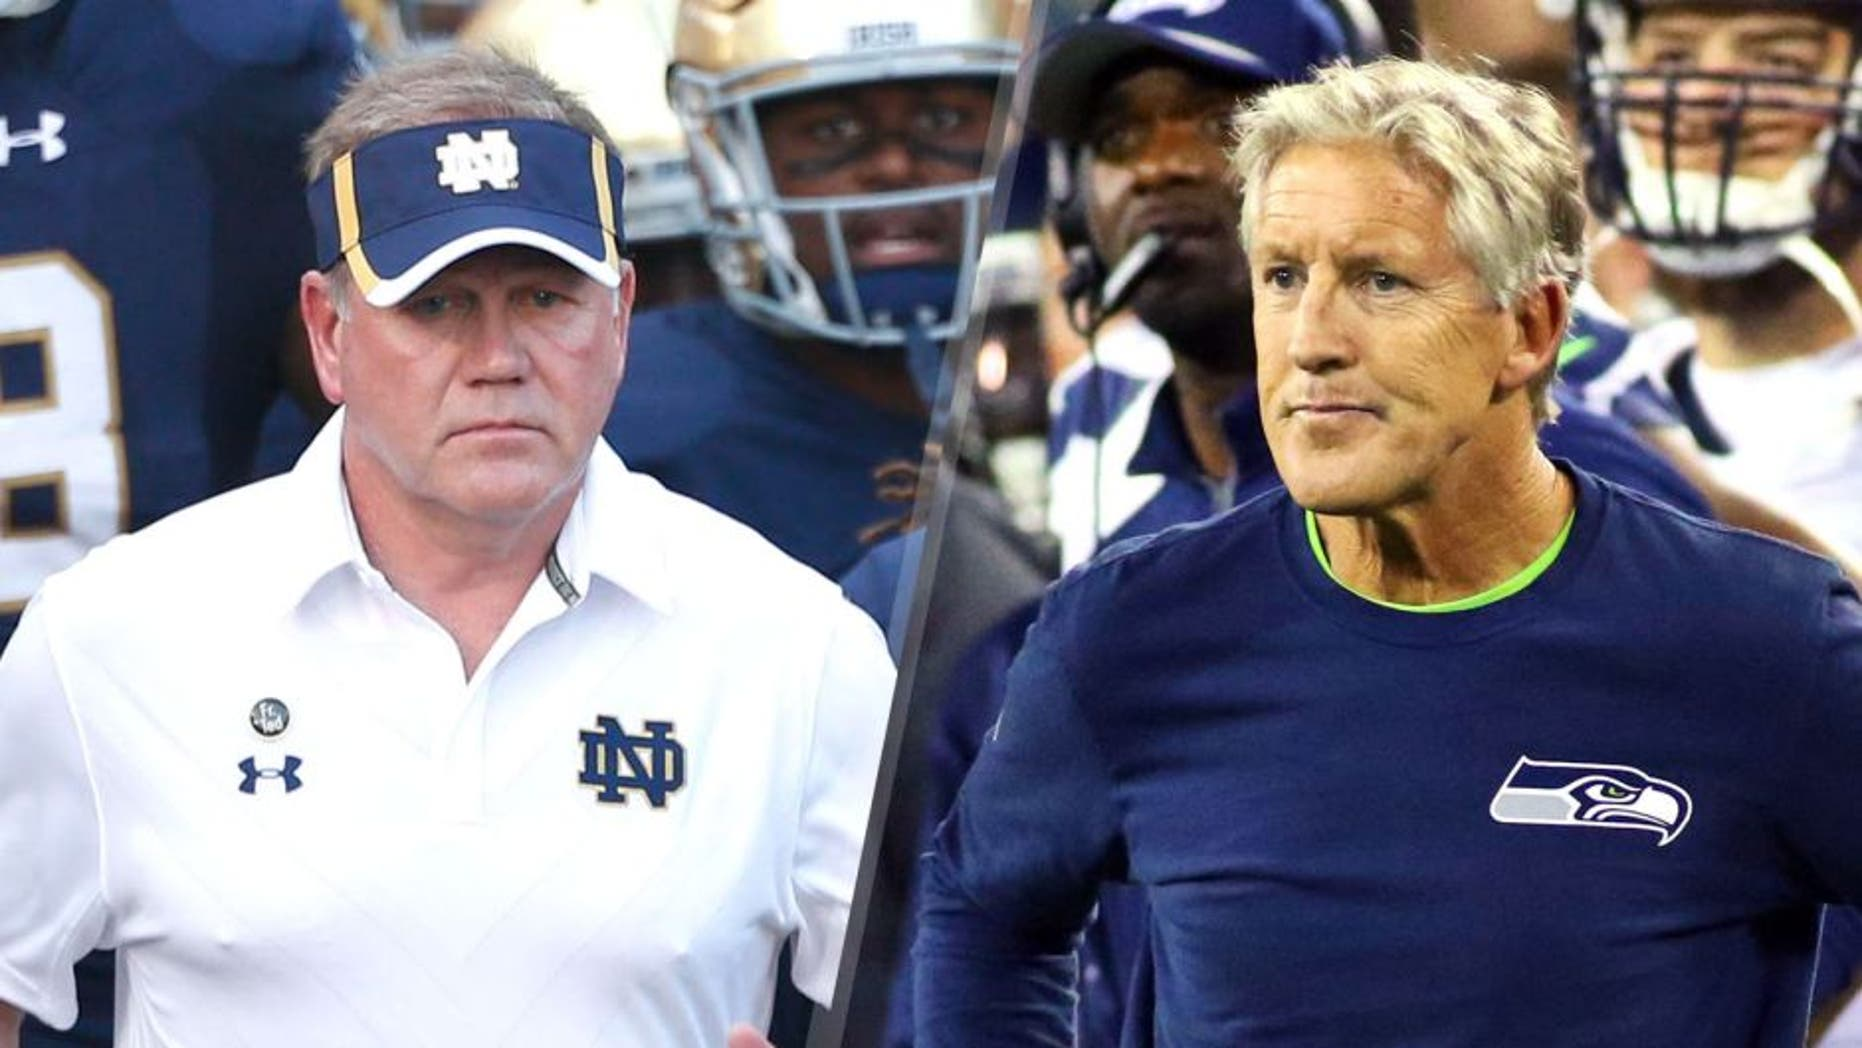 Sep 5, 2015; South Bend, IN, USA; Notre Dame Fighting Irish coach Brian Kelly leads his team onto the field before the game against the Texas Longhorns at Notre Dame Stadium. Mandatory Credit: Brian Spurlock-USA TODAY Sports, Sep 20, 2015; Green Bay, WI, USA; Seattle Seahawks head coach Pete Carroll on the sidelines against the Green Bay Packers during the second quarter at Lambeau Field. Mandatory Credit: Ray Carlin-USA TODAY Sports